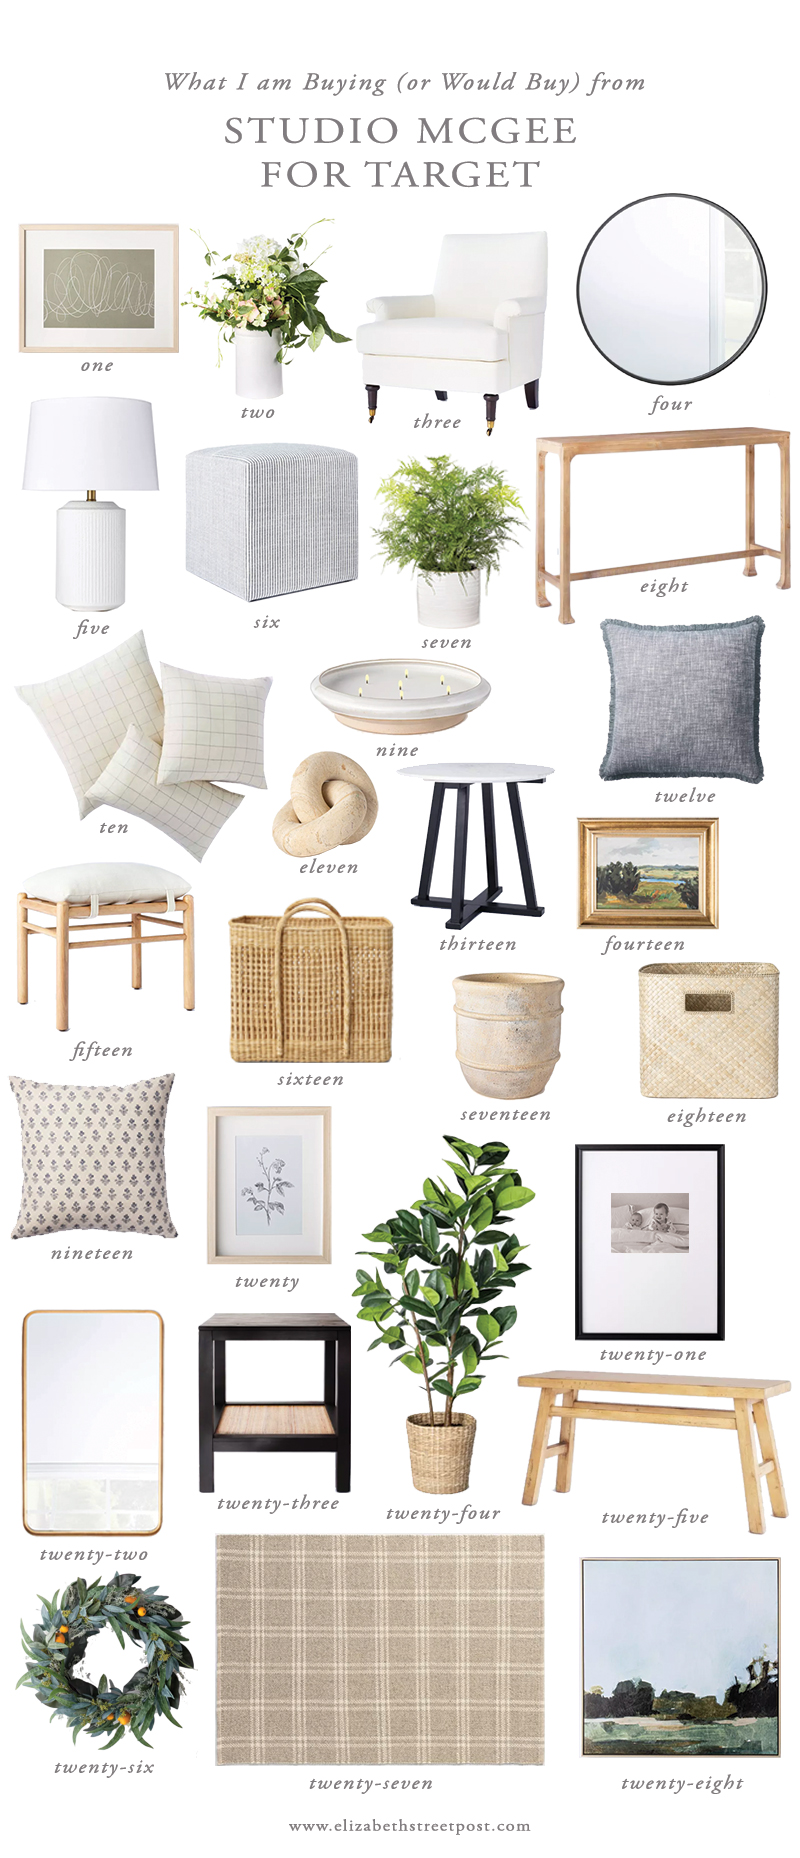 Studio Mcgee For Target What I M Buying Elizabeth Street Post